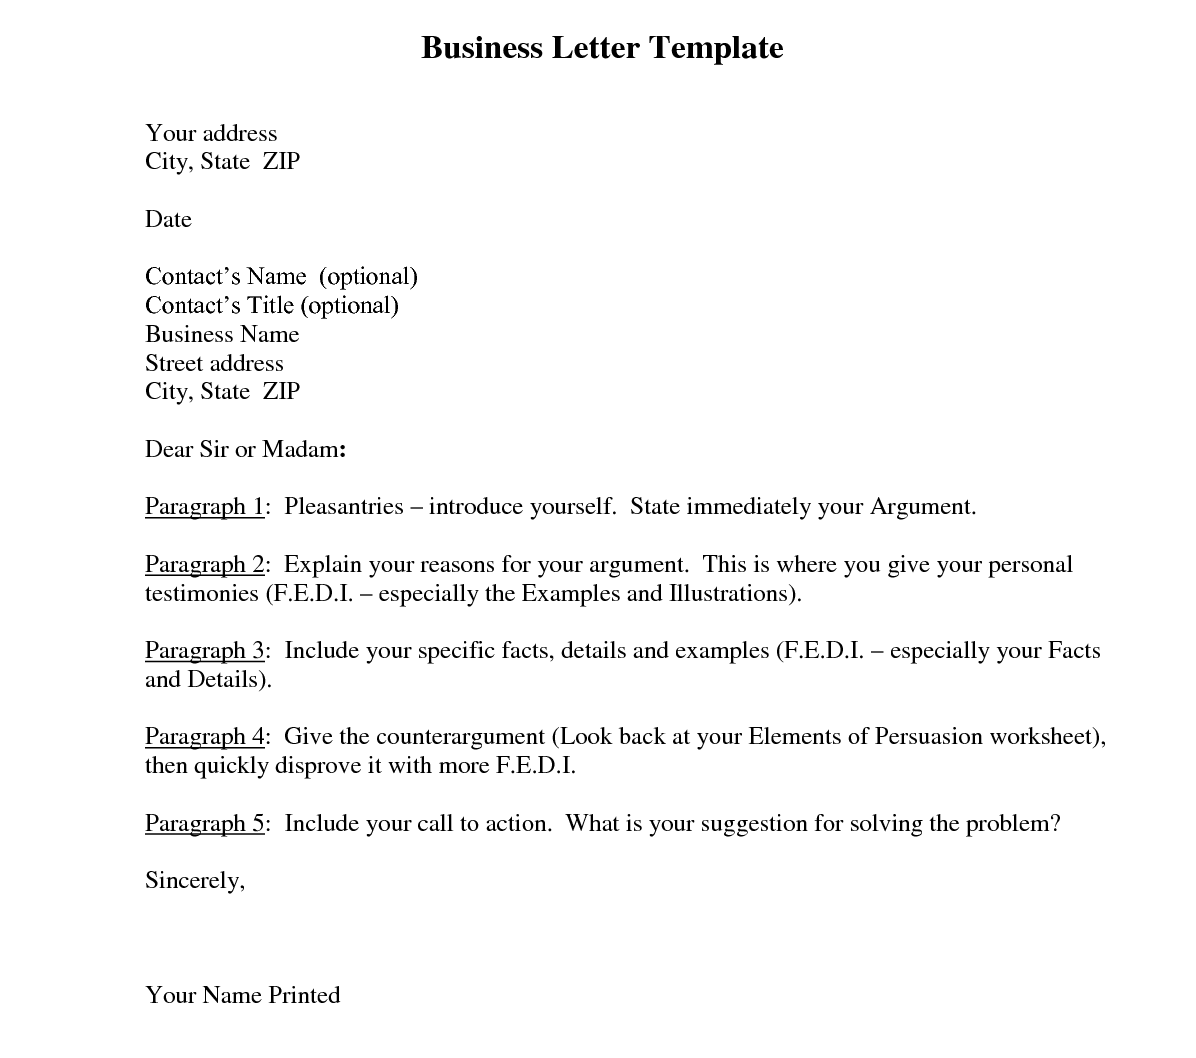 7 formats of business letter template word pdf - Business Letter Template Word